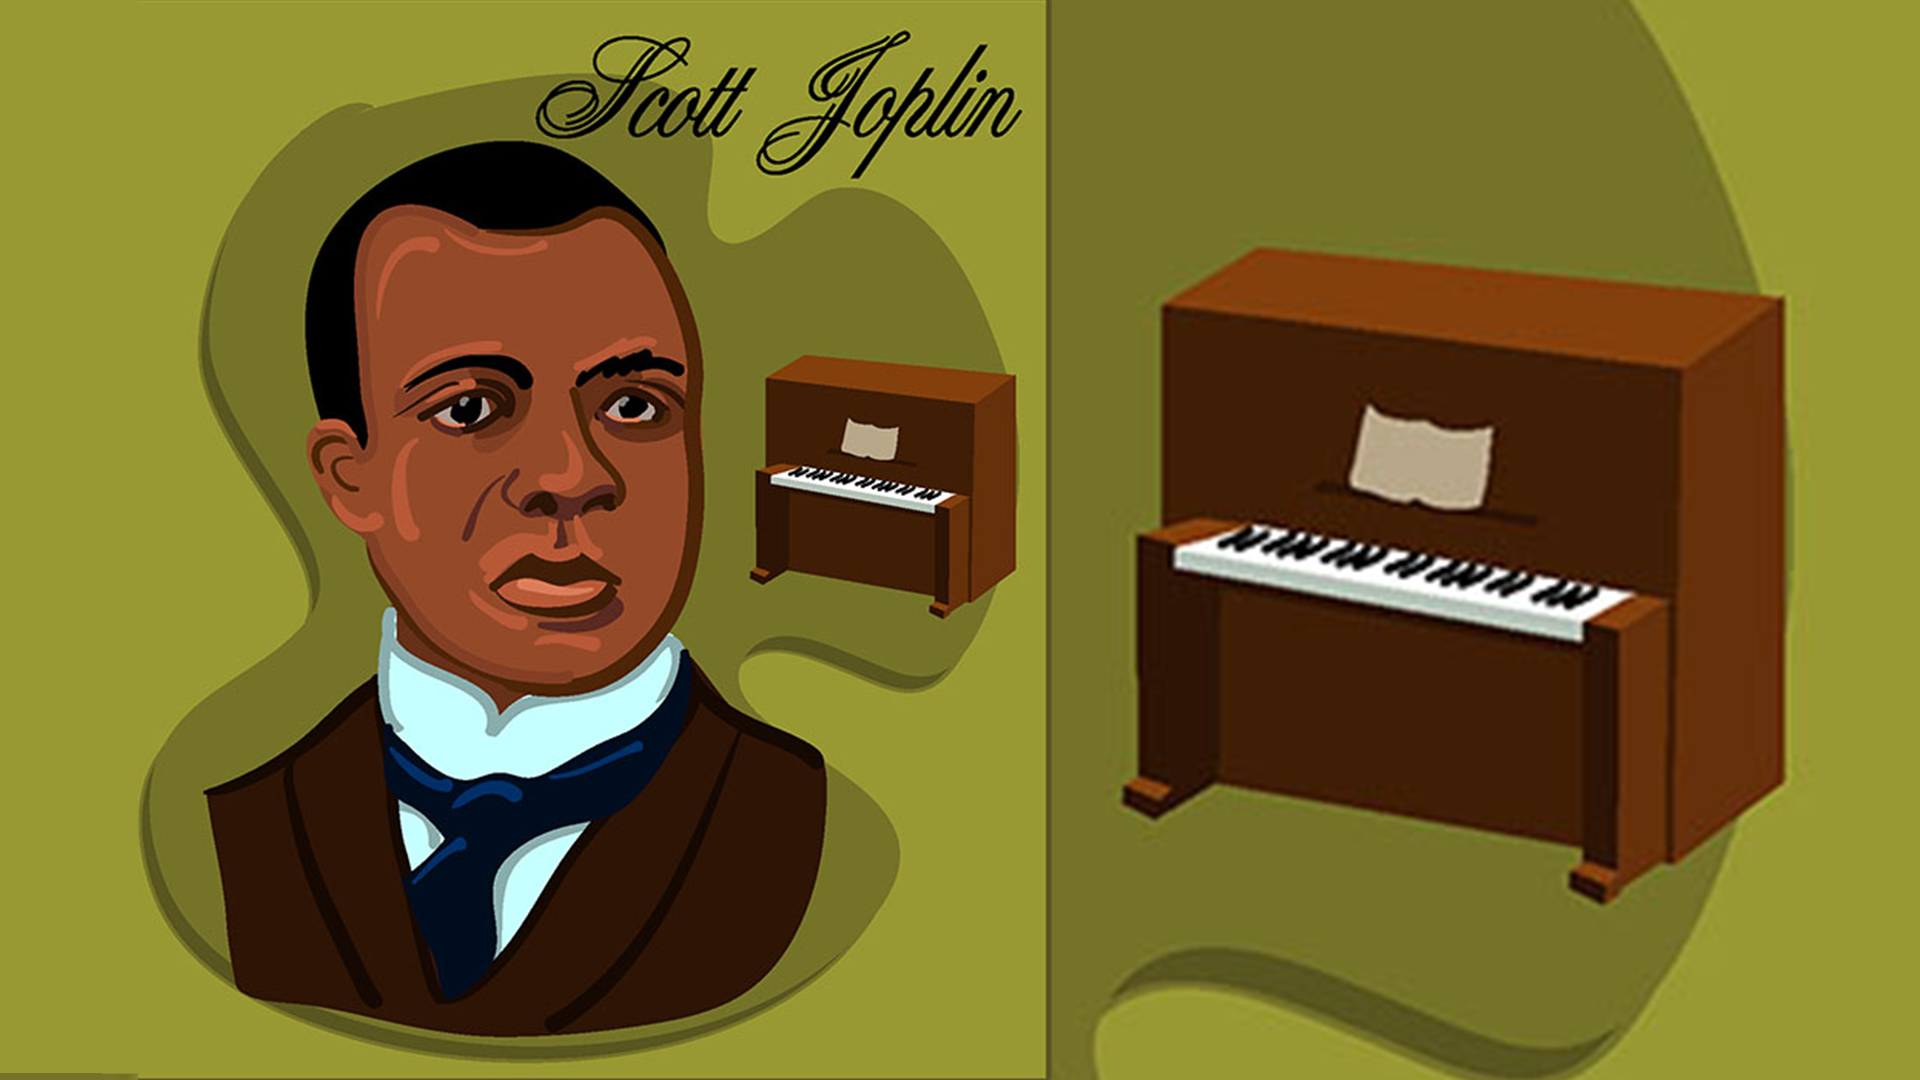 5 Days of Scott Joplin: Day 5, Best of Scott Joplin Playlist & a Fun Scott Joplin Word Search